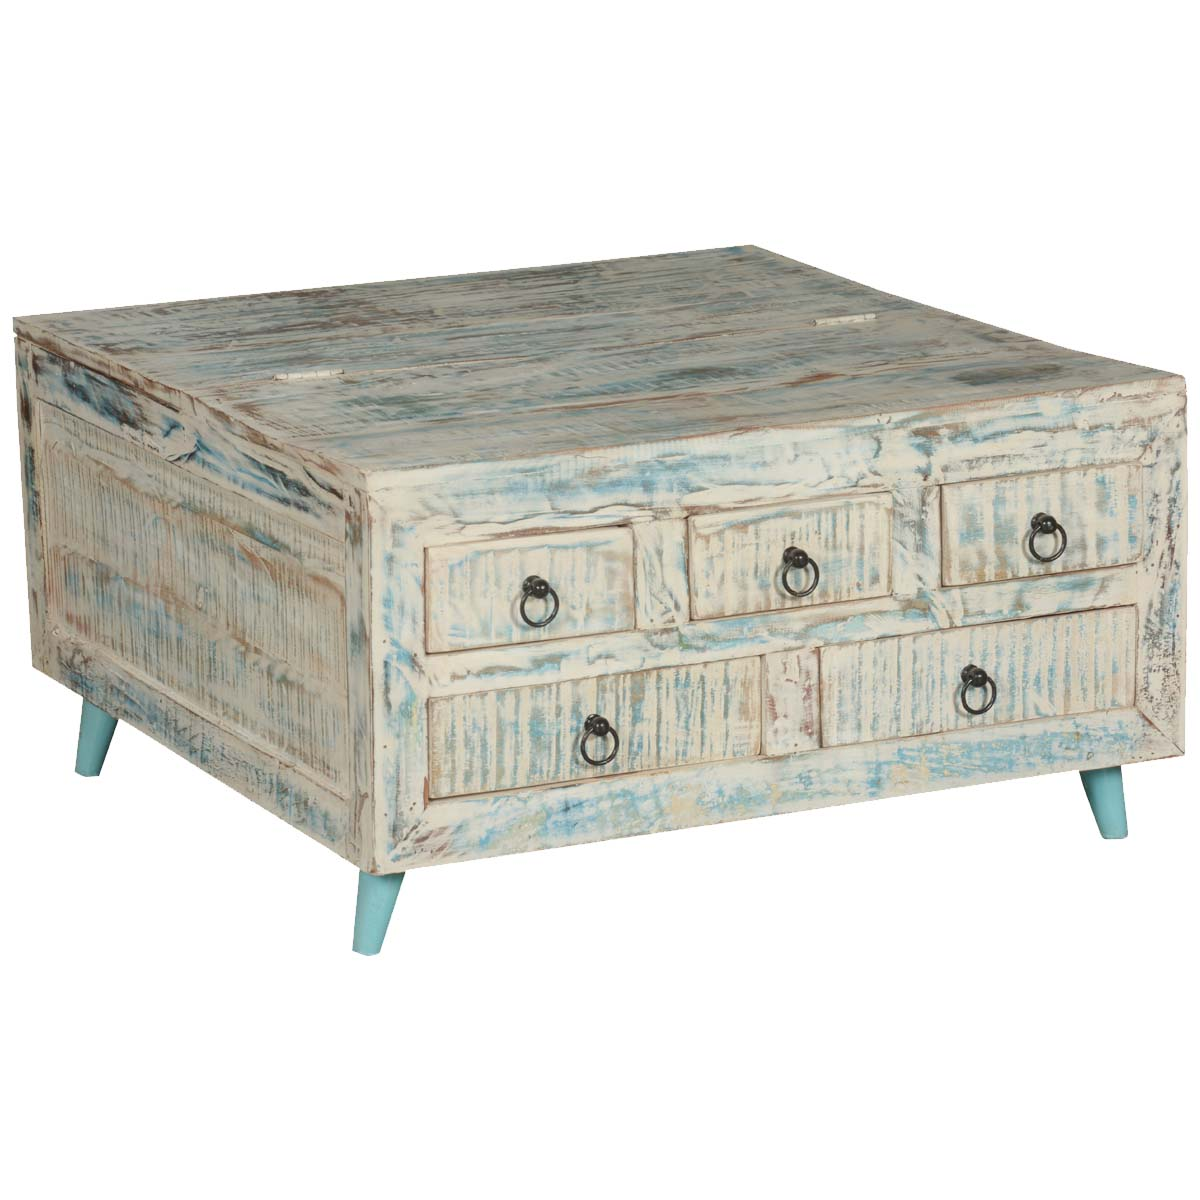 """Coffee Table Chest Drawers: White Washed Reclaimed Wood 35.5"""" Sq Coffee Table 5-Drawer"""